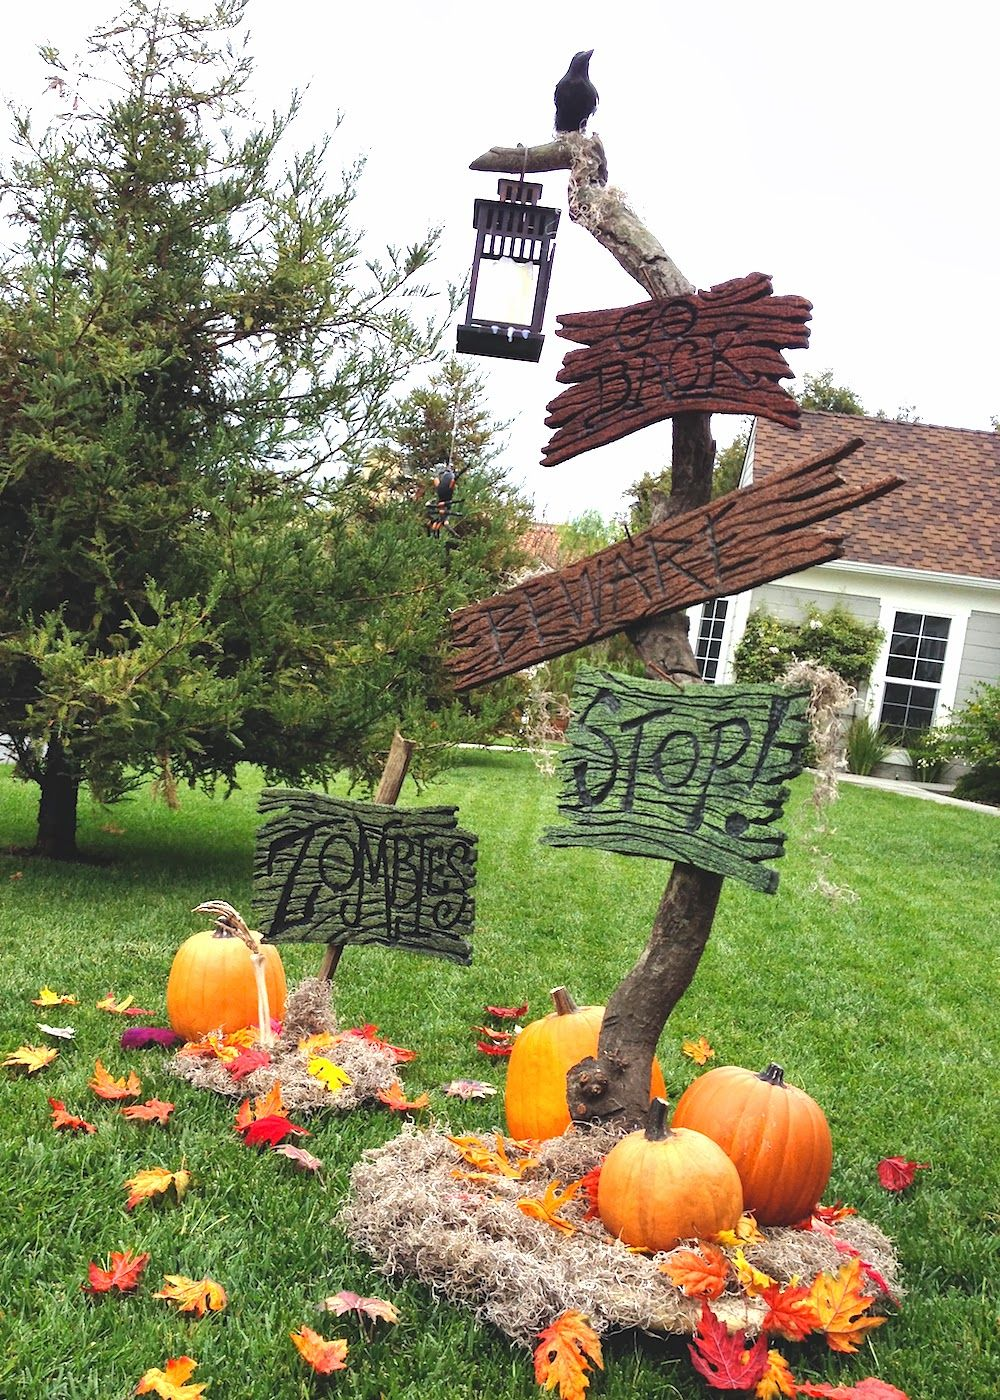 A few weeks back, I sketched this concept of a spooky sign post for - Scary Halloween Yard Decorating Ideas